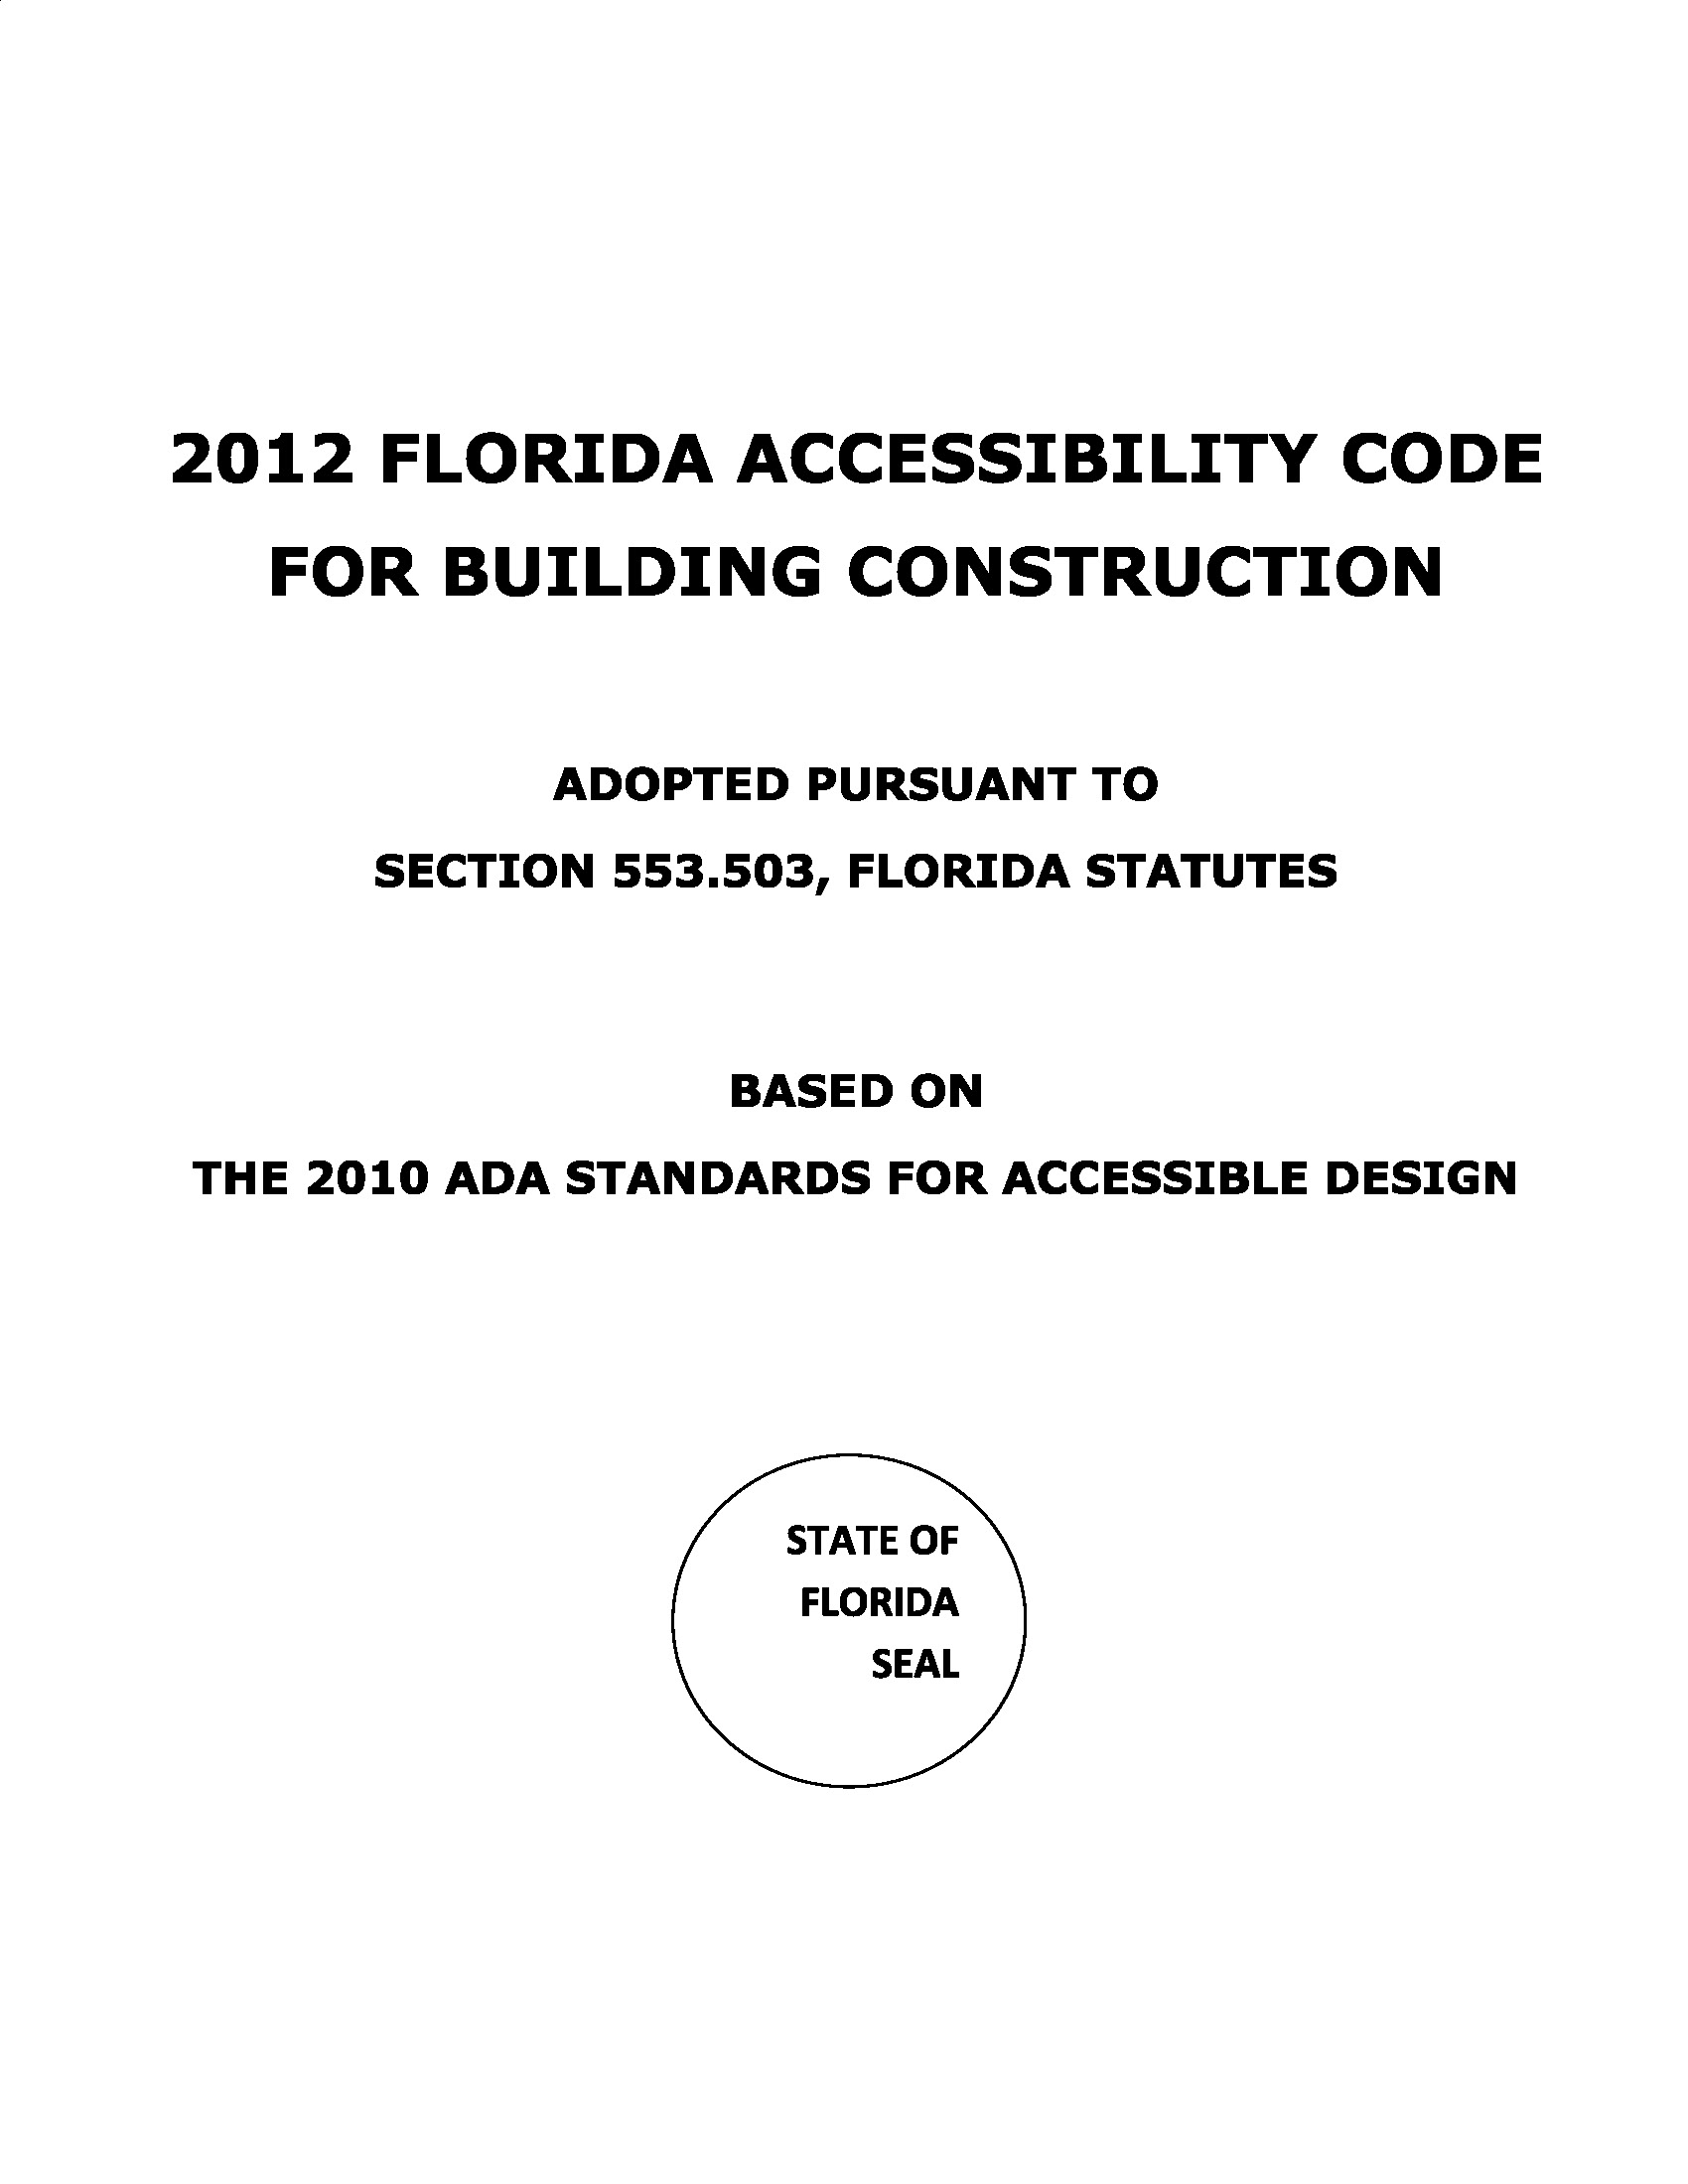 Technical assistance by codeaccess